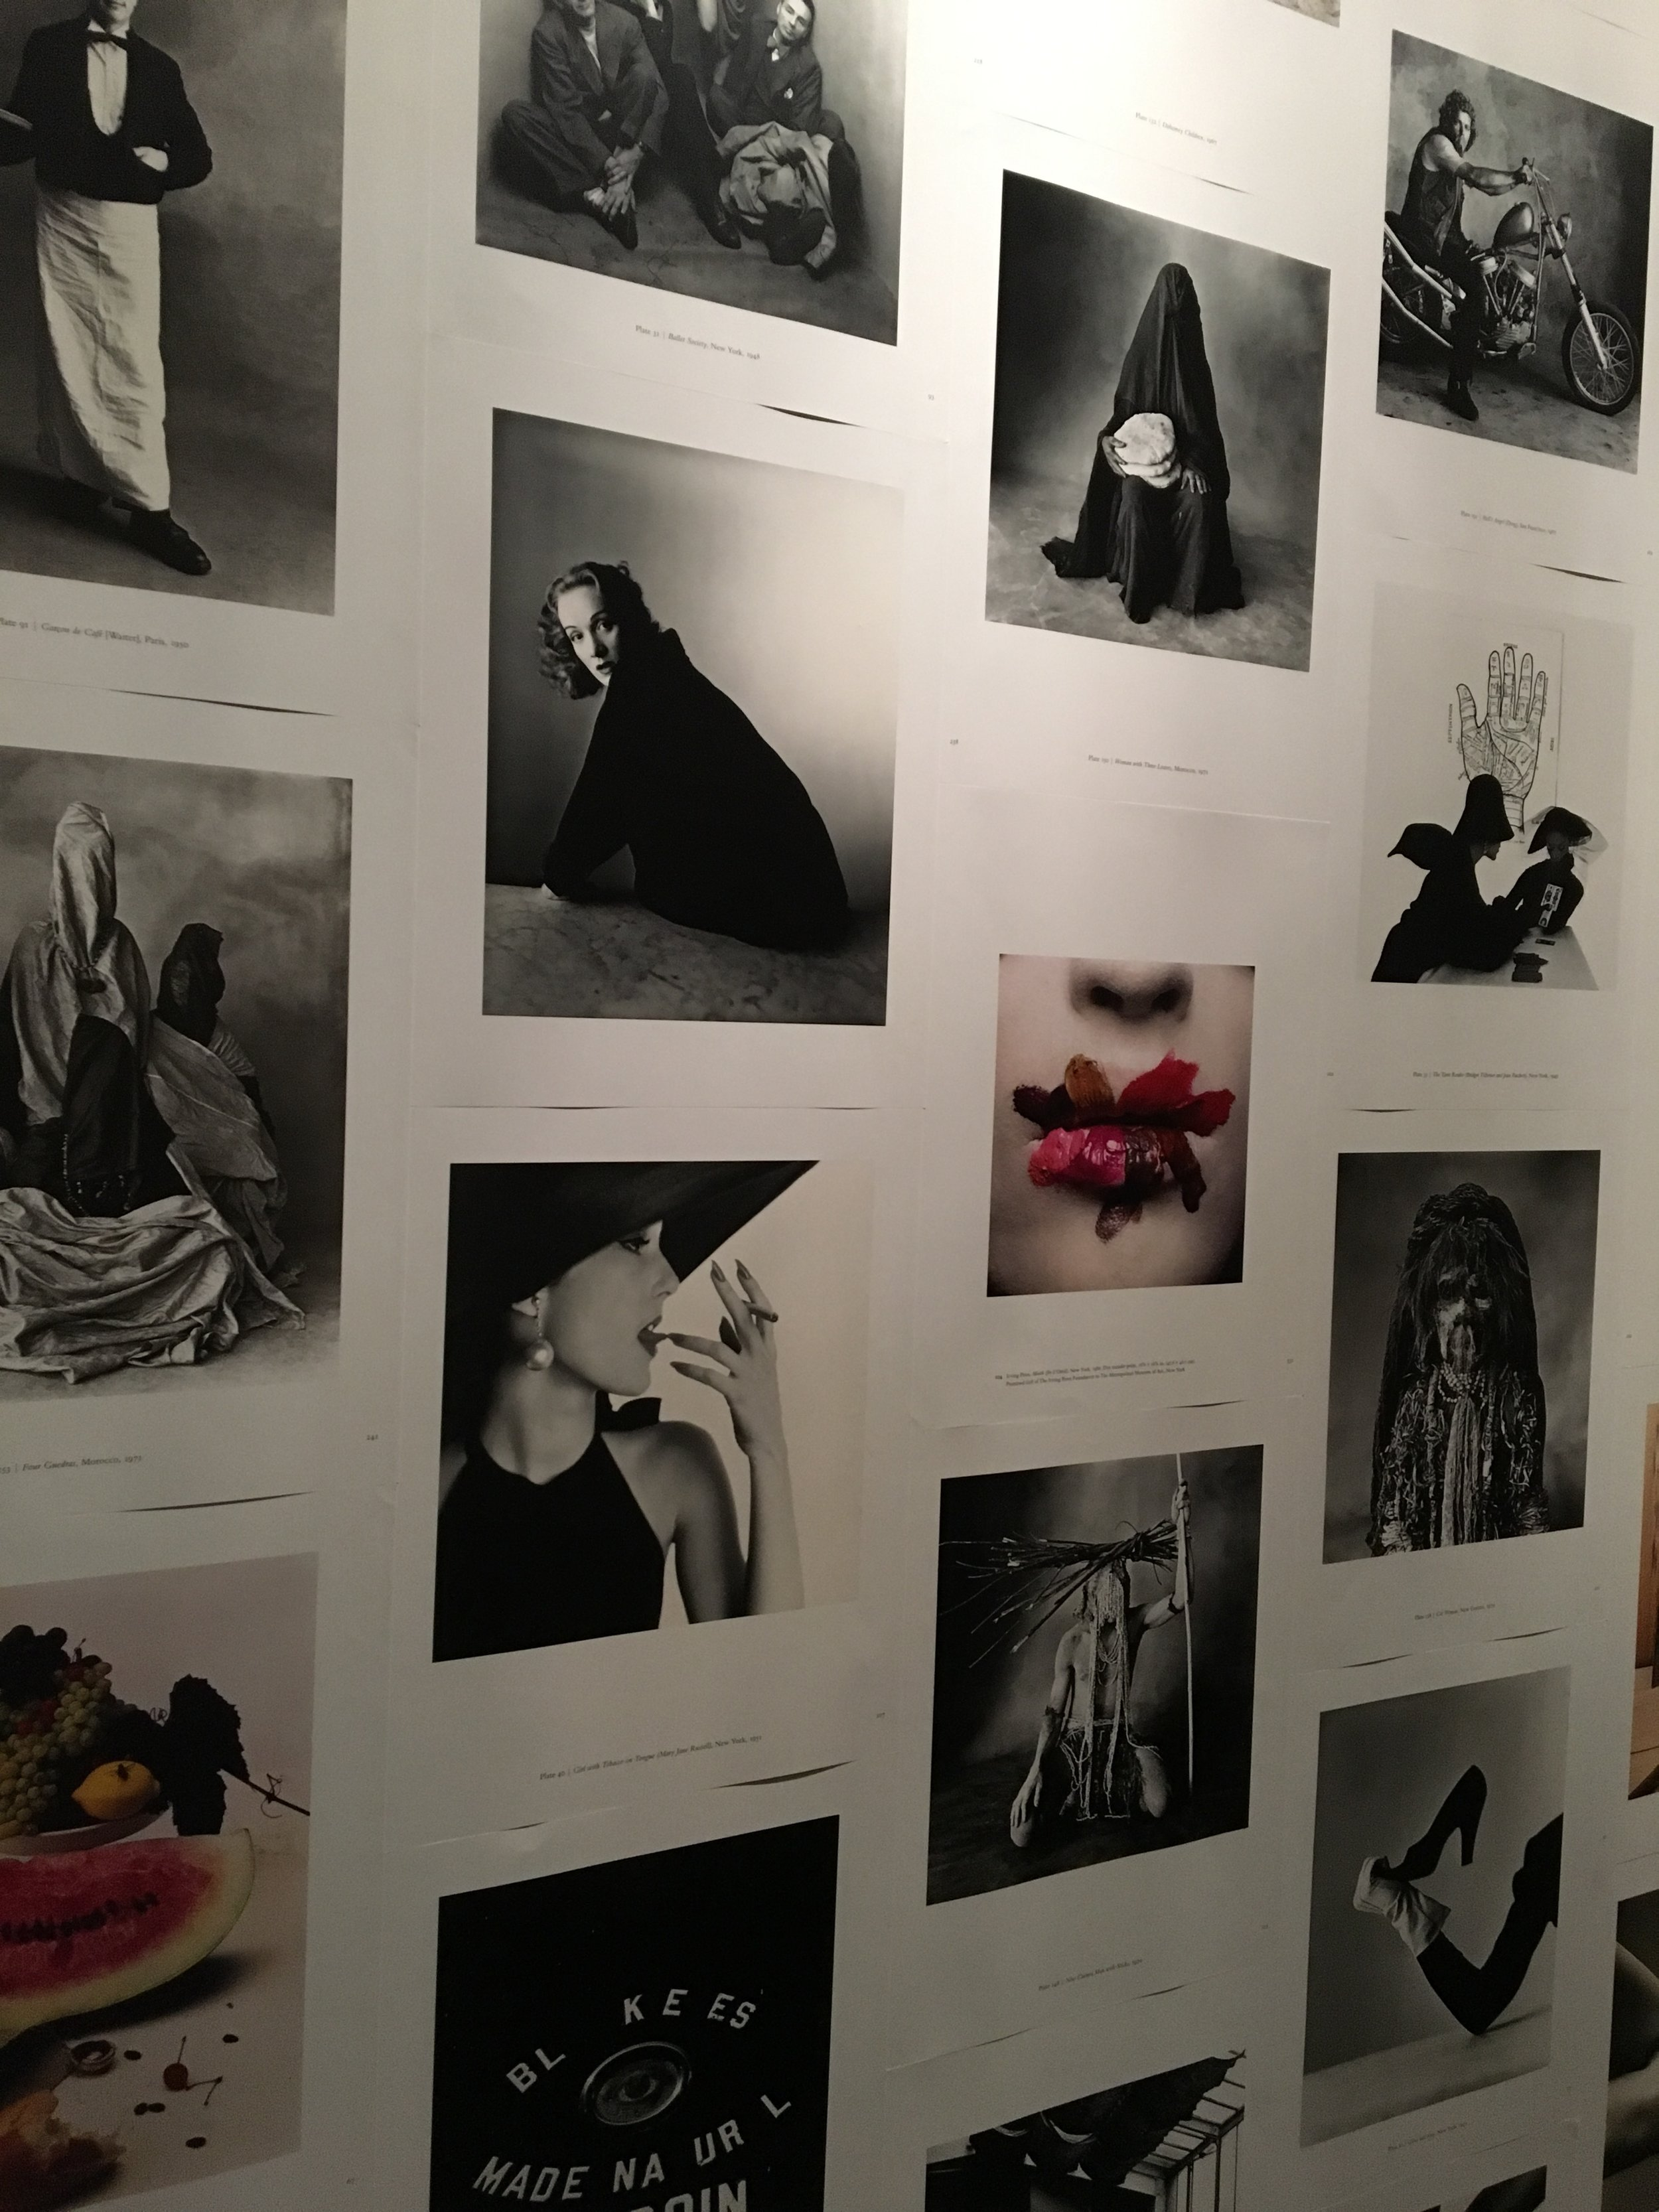 Who is Irving Penn? - Every moment of inspiration has been better than the last. While in New York, I had the opportunity to visit The Met. My main goal was to visit The Art of the In Between but I noticed there was an exhibition of photographs by Irving Penn.